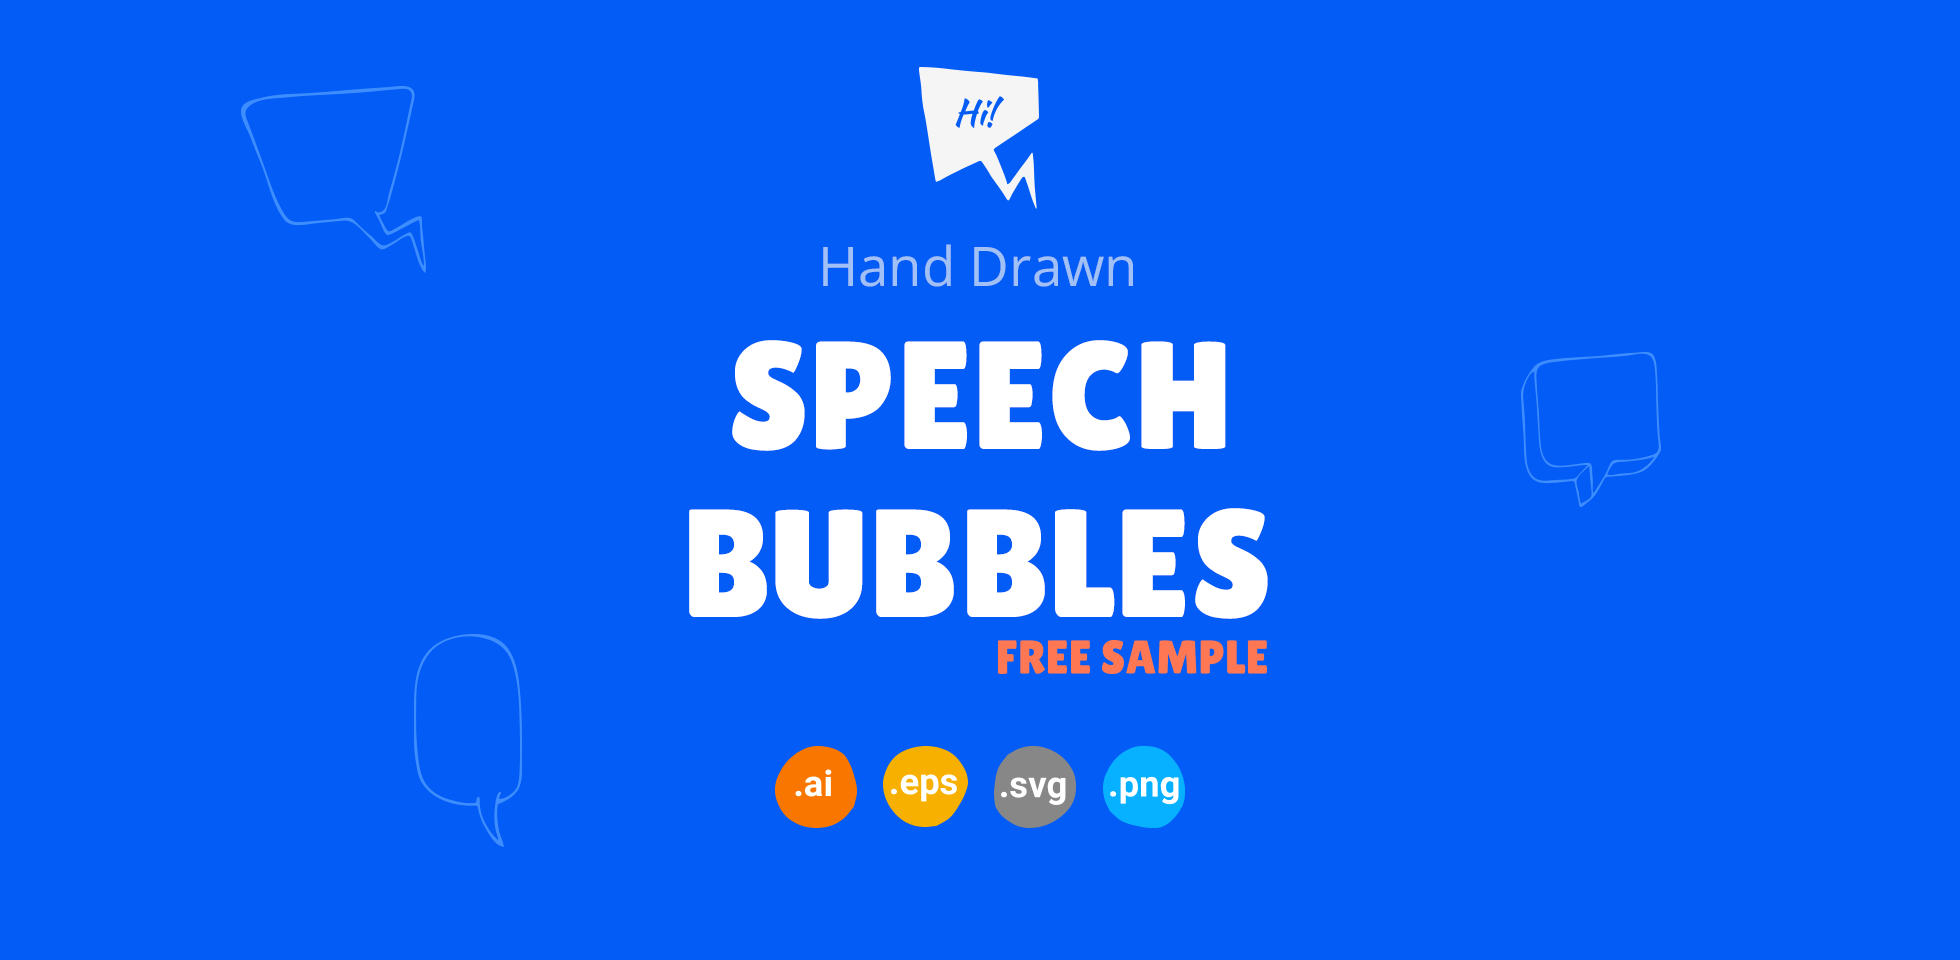 Free Download: Hand Drawn Speech Bubbles